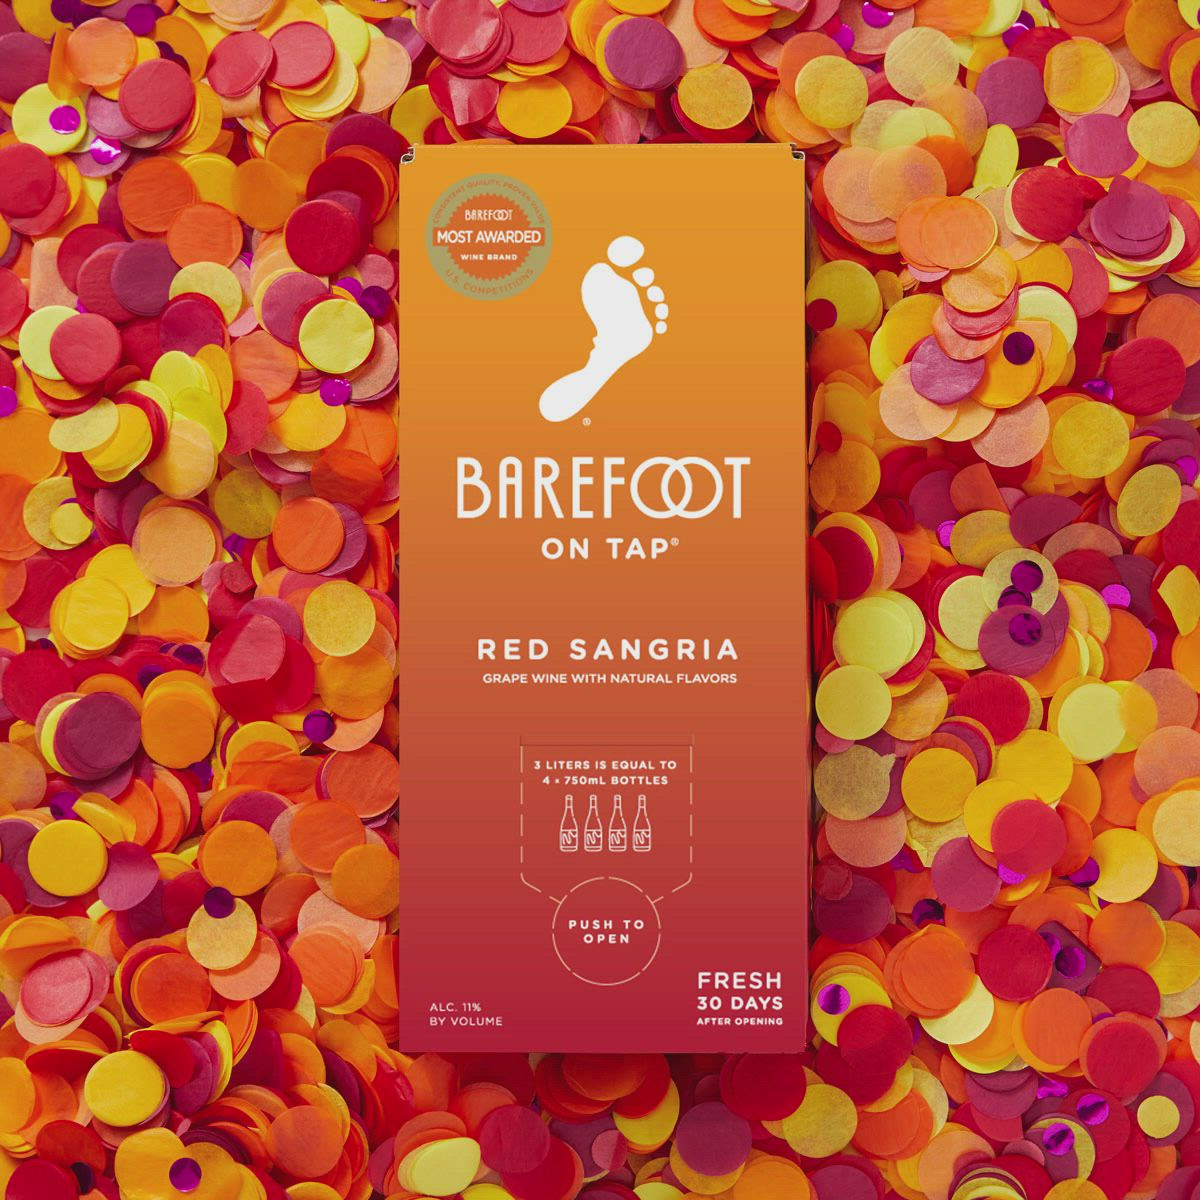 New Barefoot Wine On Tap Video In 2020 Barefoot Wine Playing Cards Art Wine Box